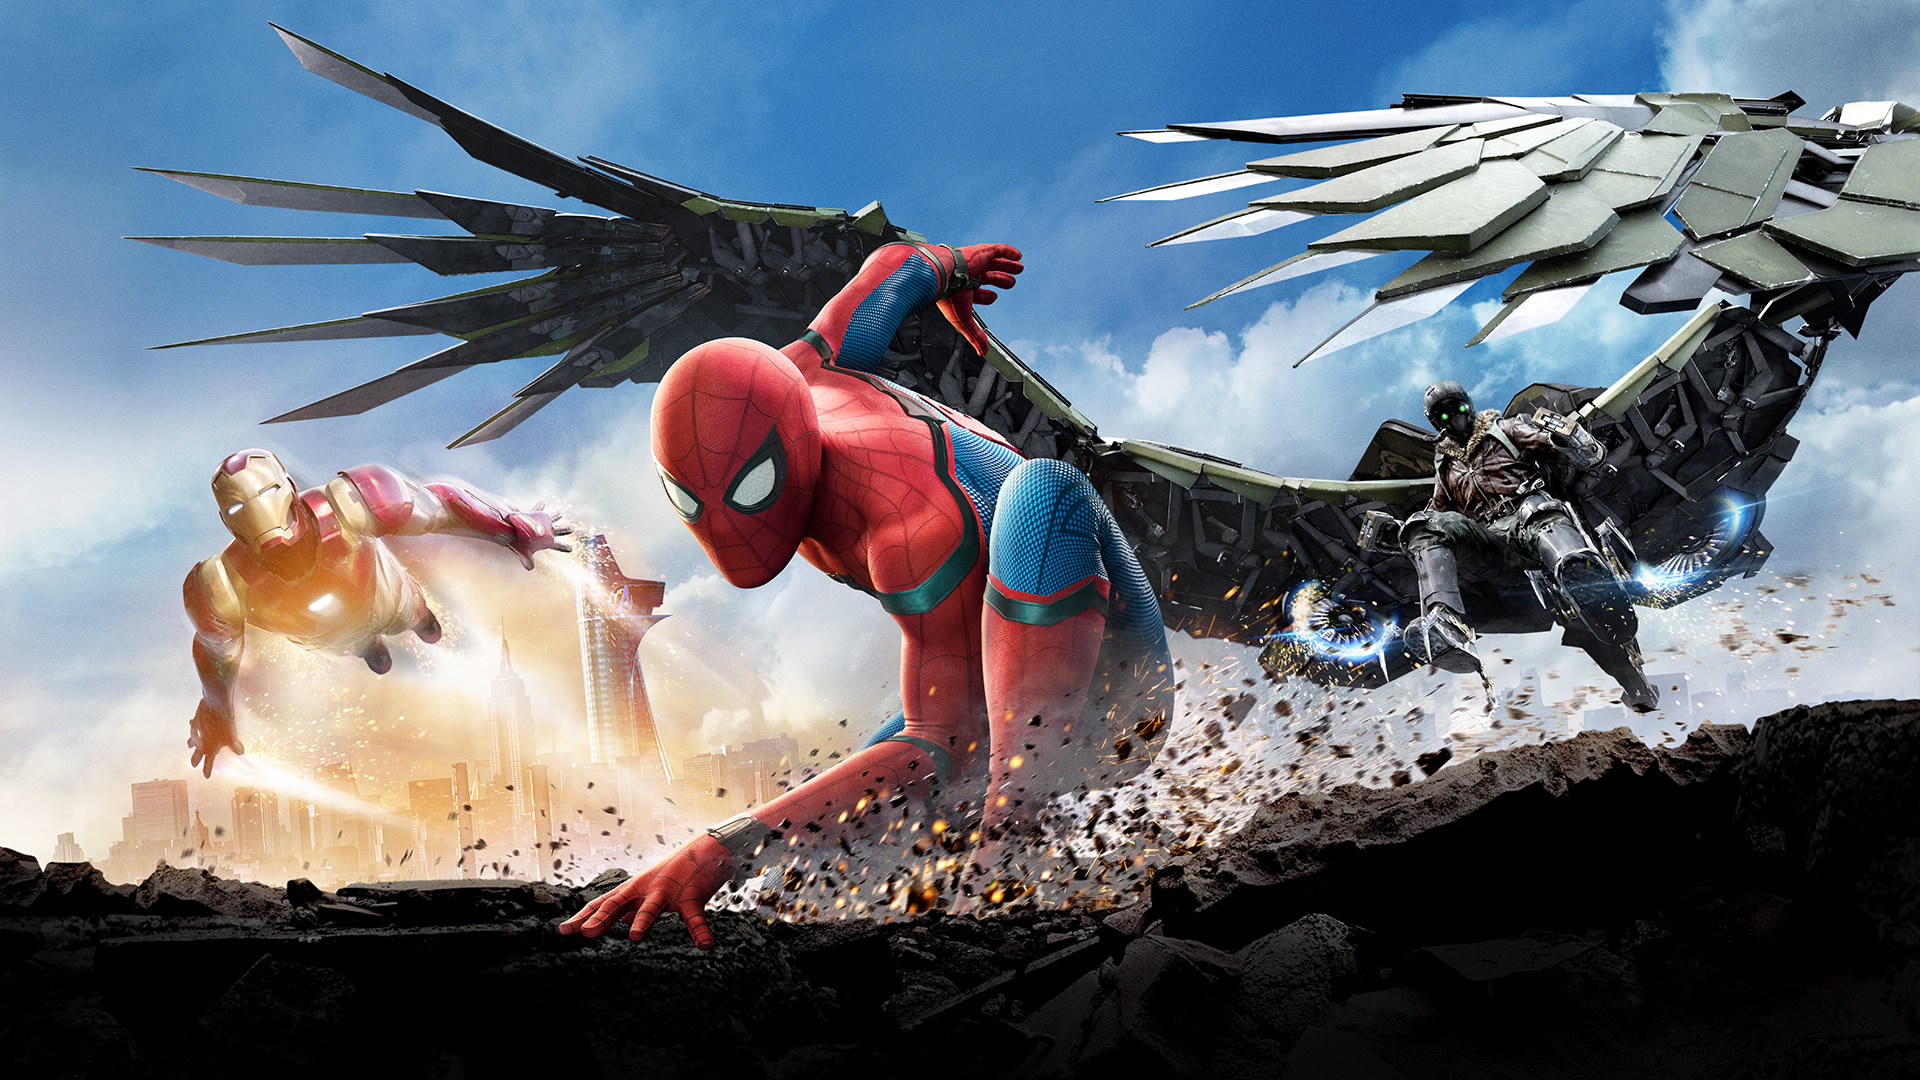 Putting the 'friendly neighborhood' back into Spider-Man… - The MCU's first dedicated Spider-Man film leans on some early examples of he source material to tap into parts of the character no major movie has before.